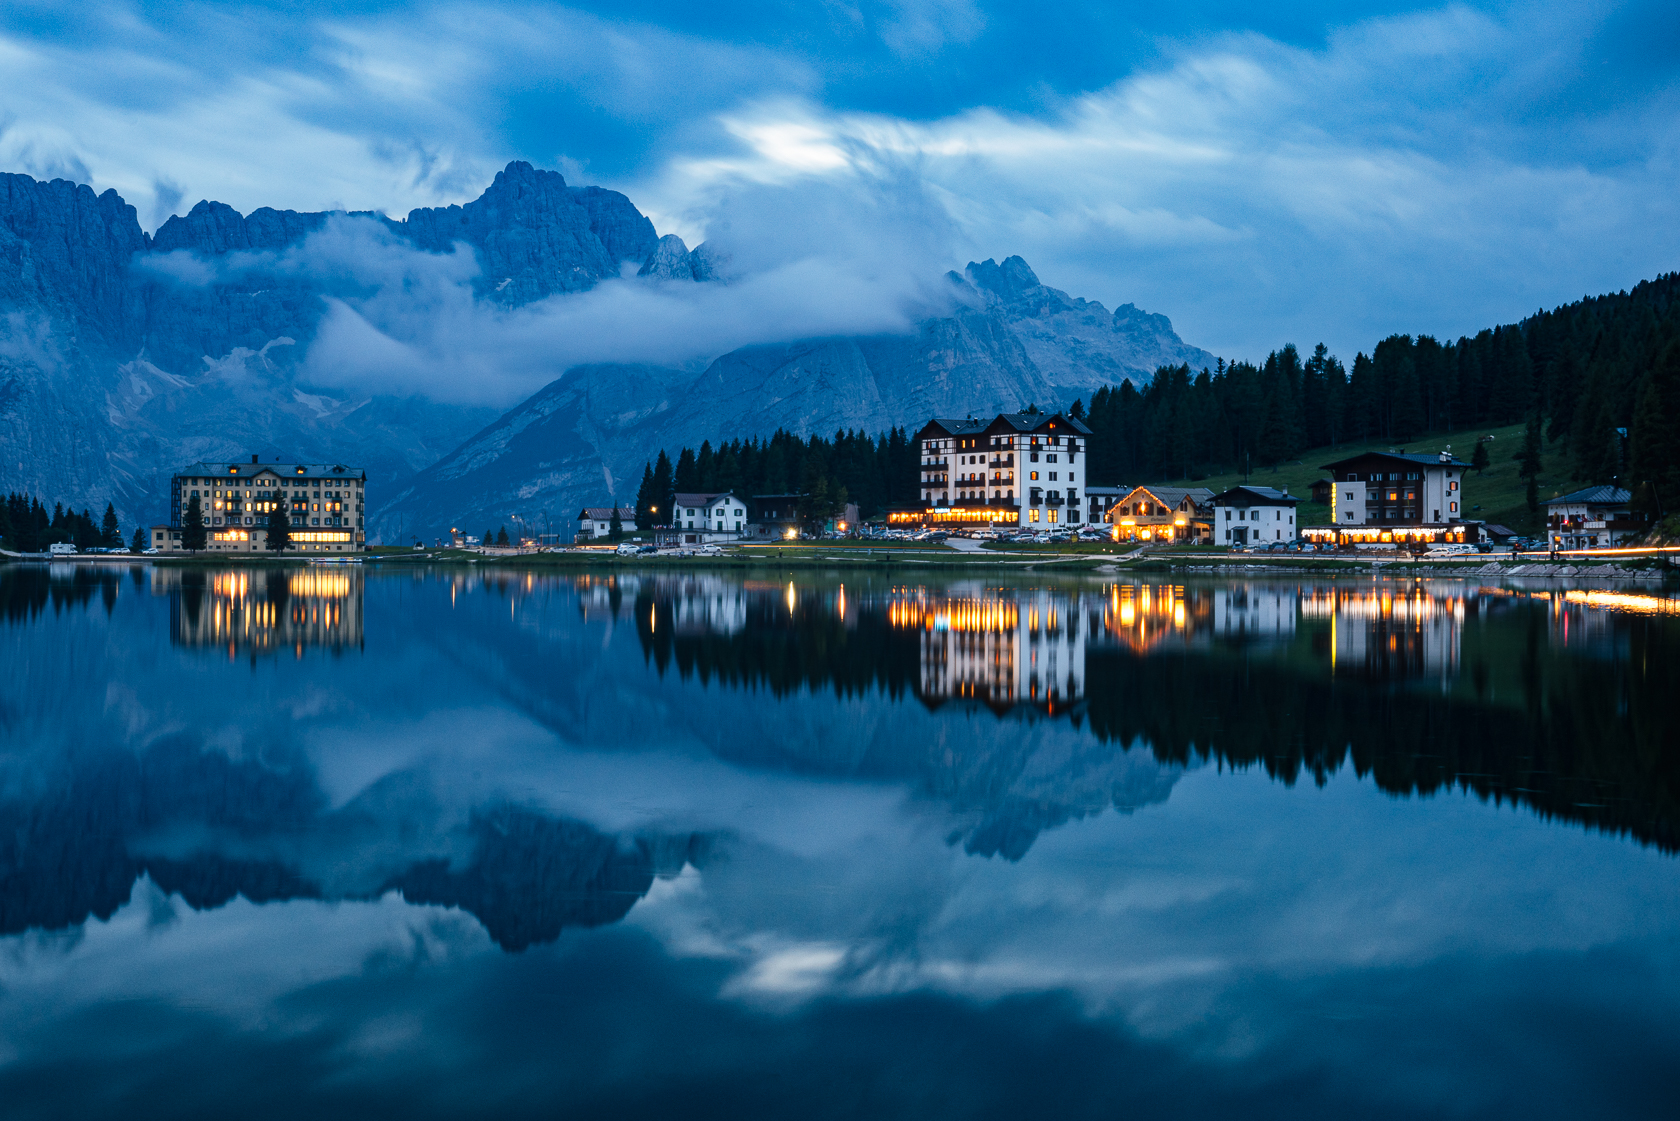 Lake Misurina Reflection.jpg